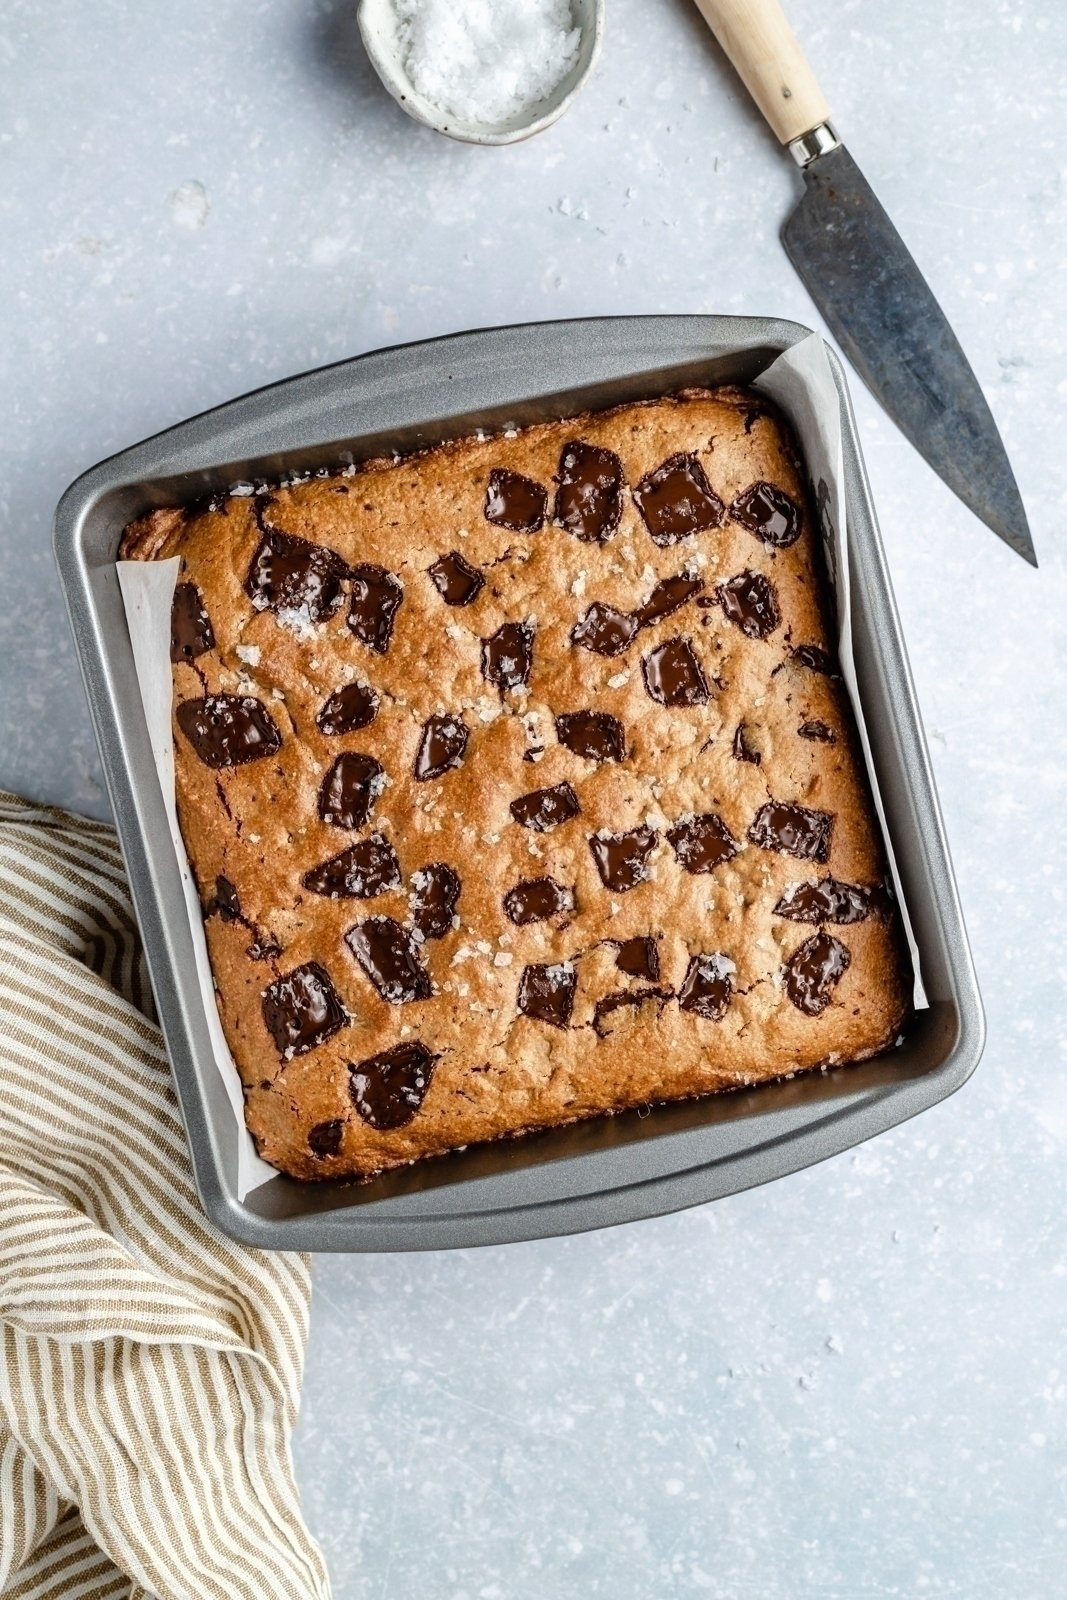 peanut butter cookie bars uncut in a baking pan